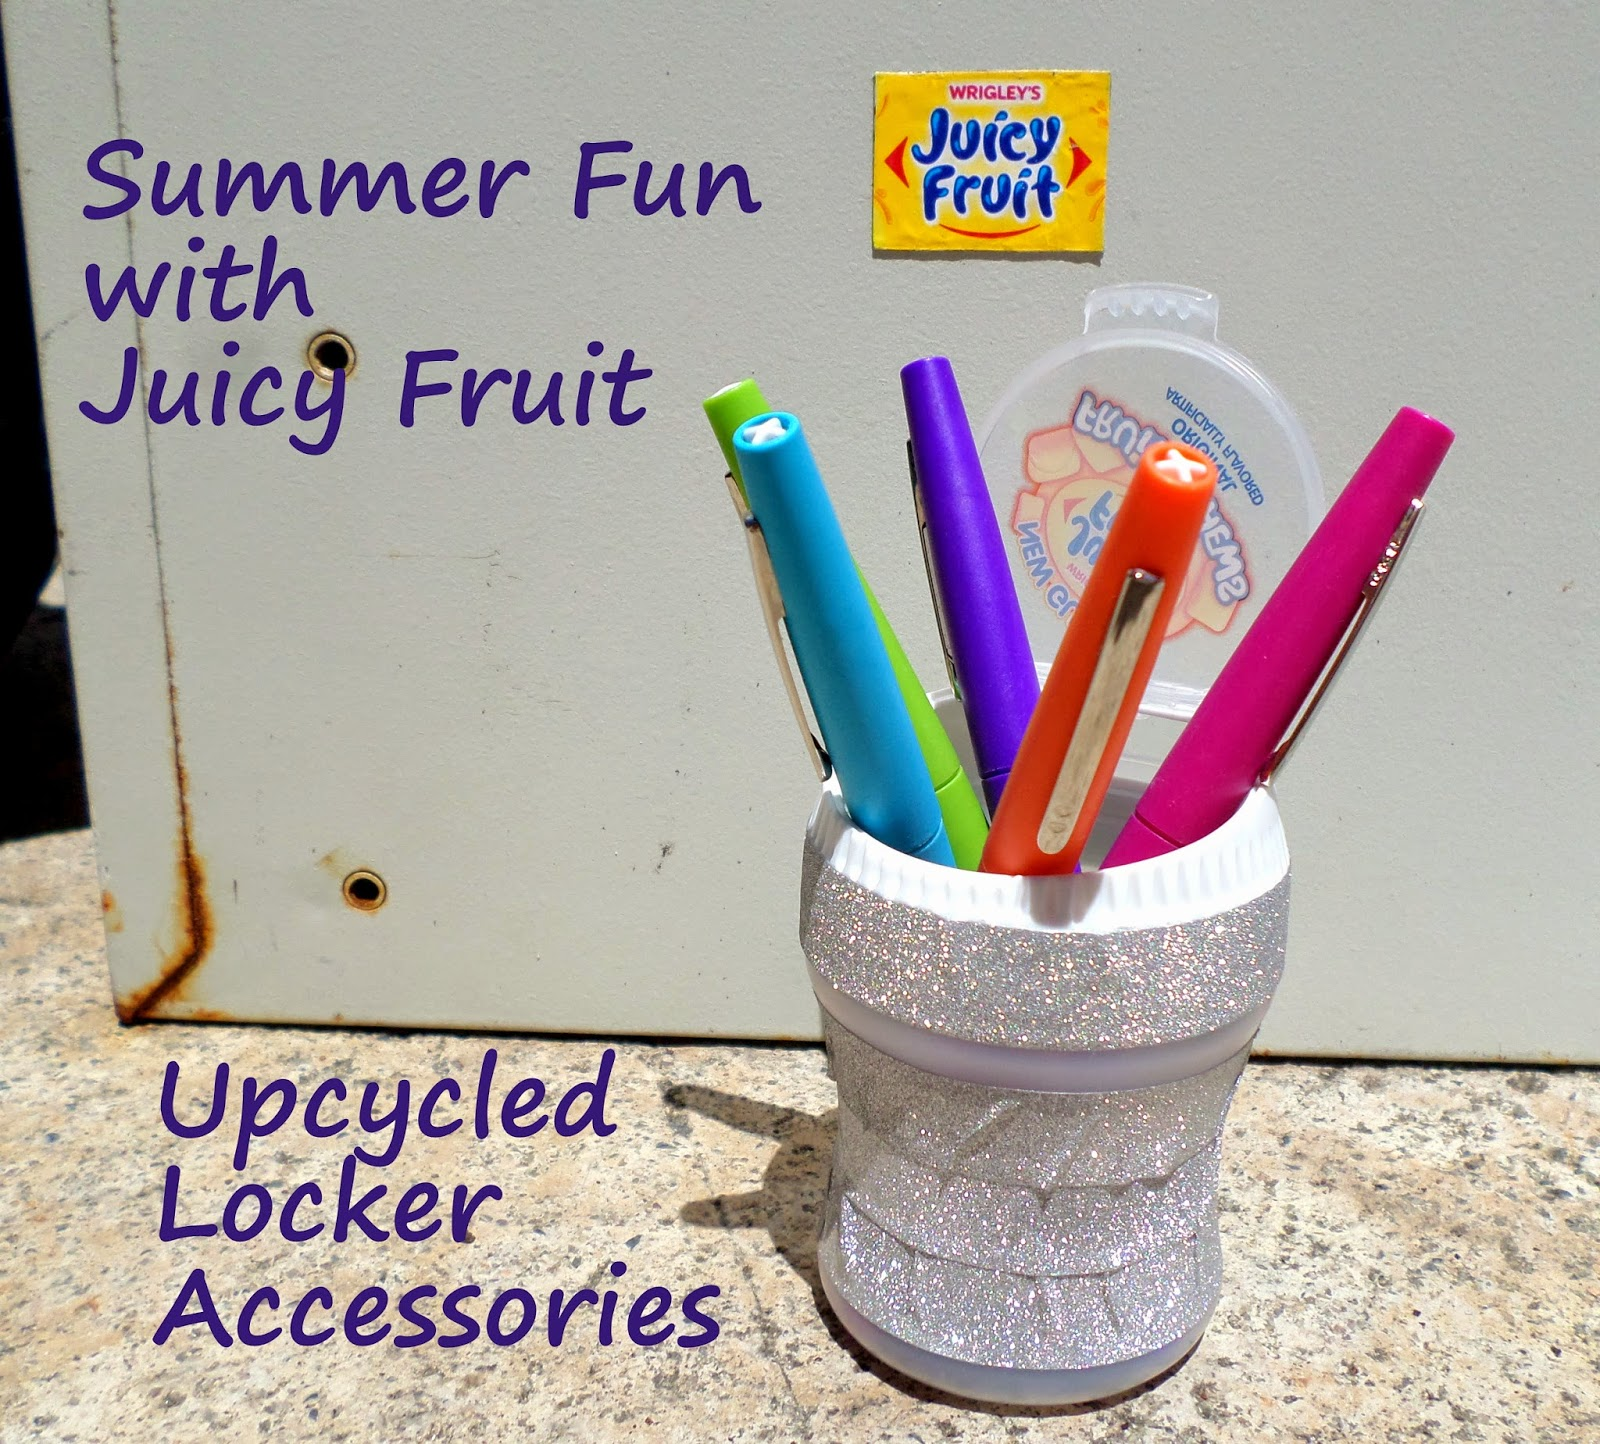 Summer Fun Juicy Fruit Upcycled Locker Accessories #JuicyFruitFunSide #shop